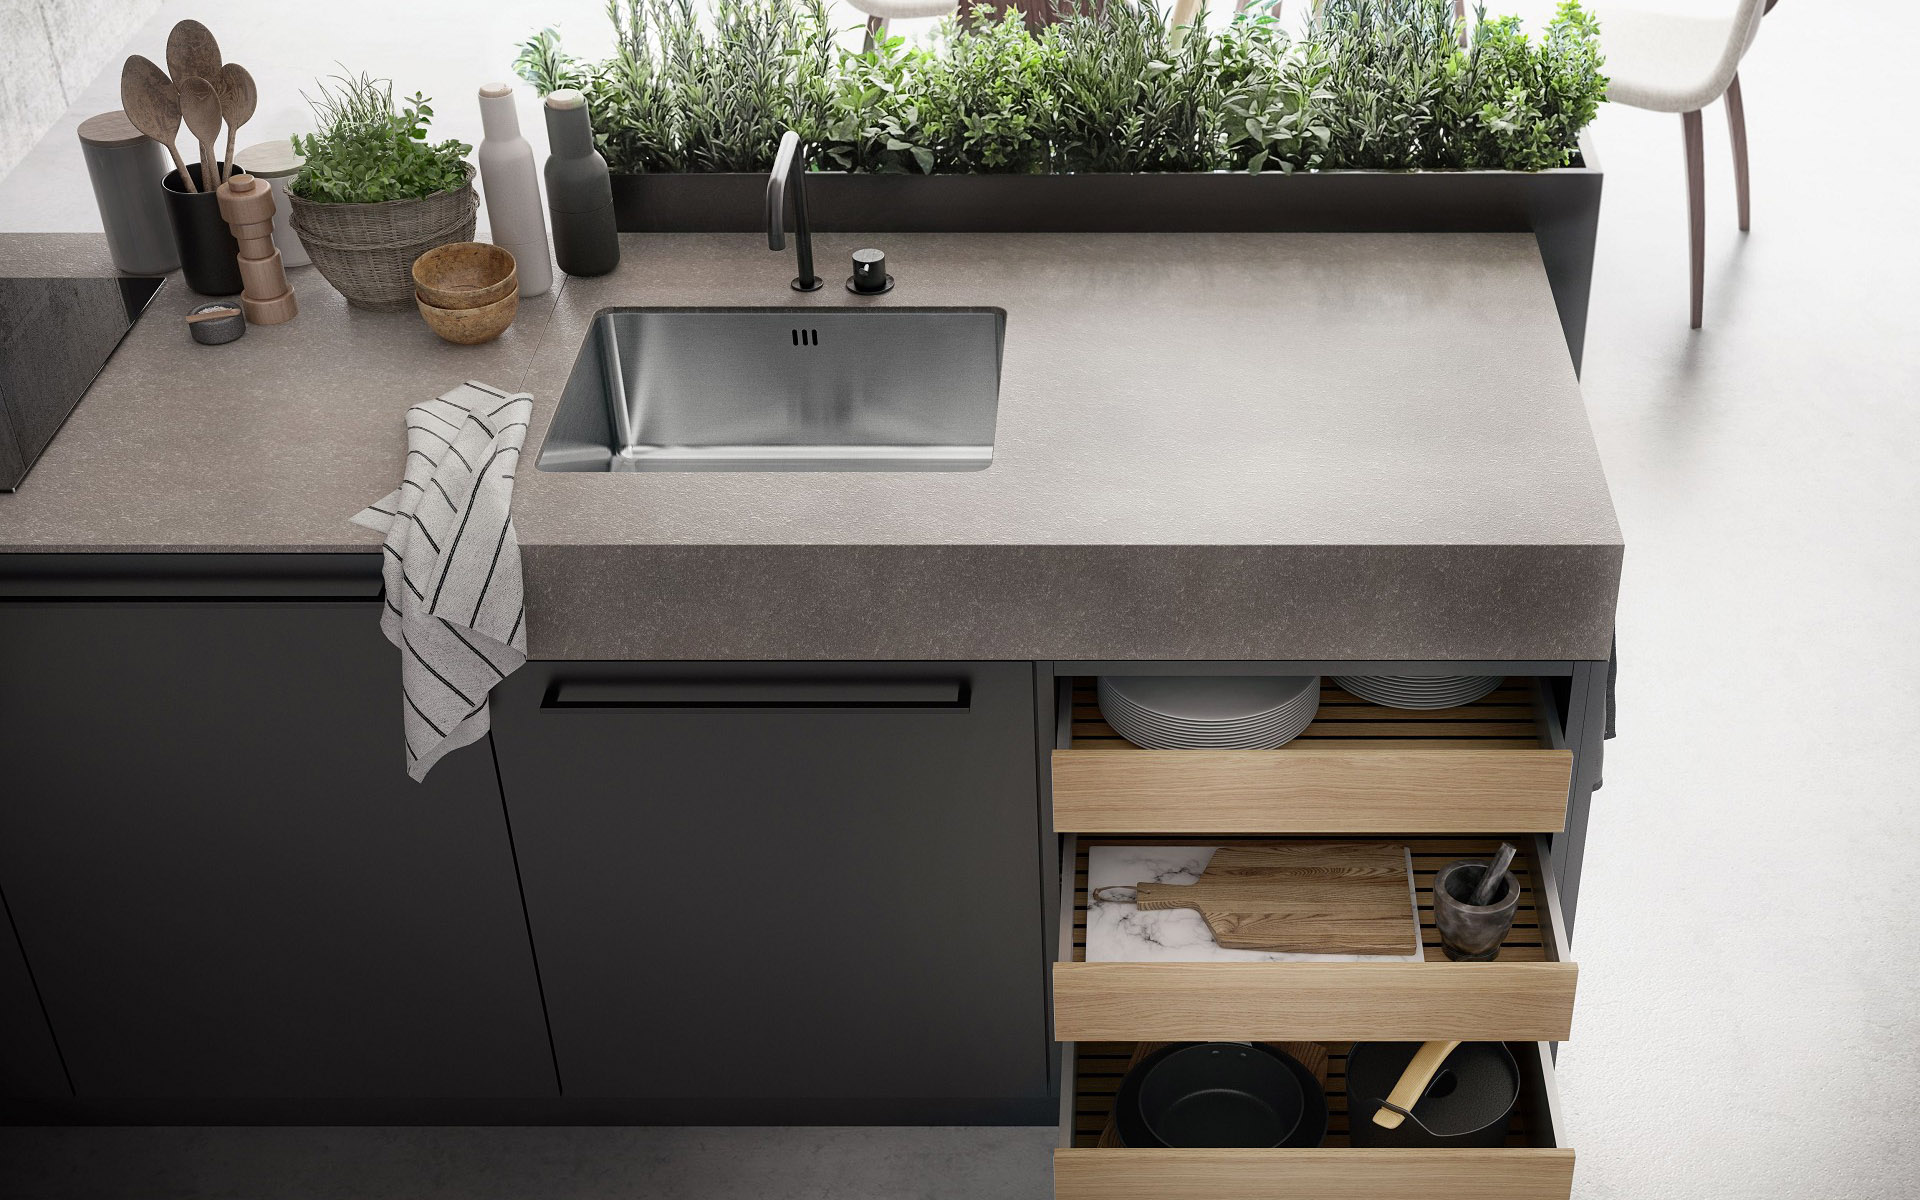 SieMatic Urban SE Kitchen Island In Graphite Grey With Herb Garden And StoneDesign Countertop